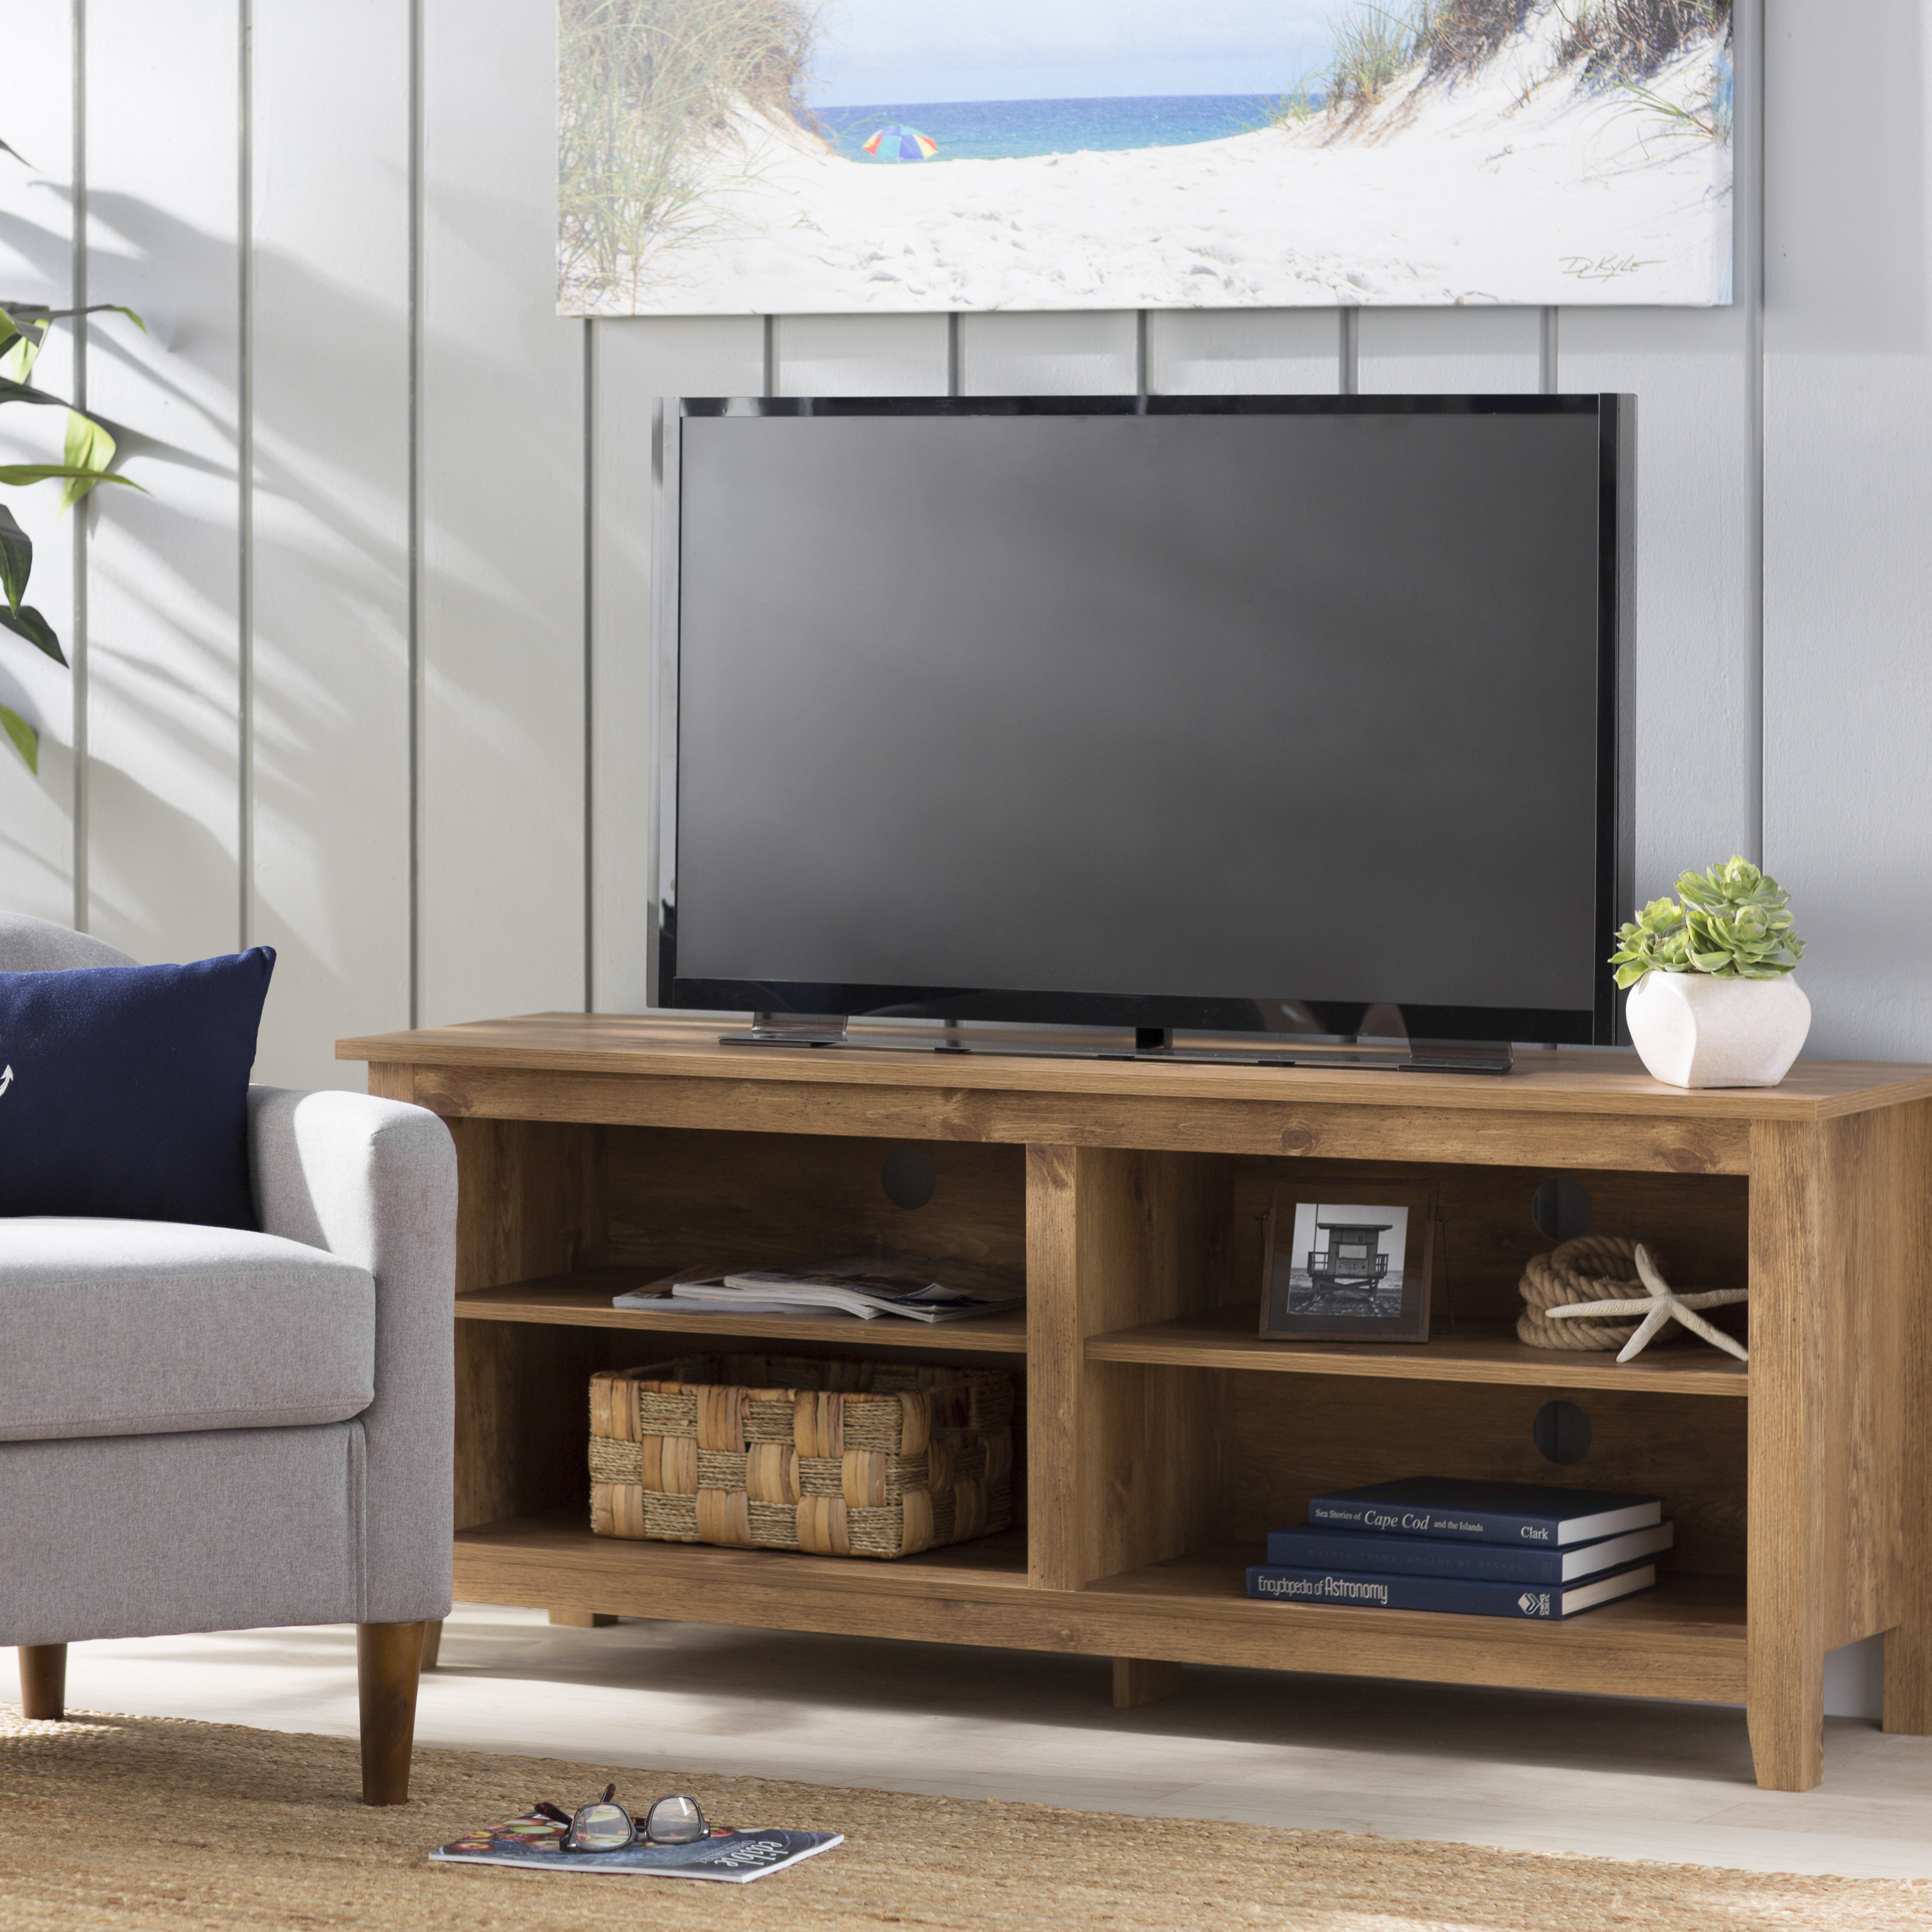 Tv Stands & Entertainment Centers You'll Love | Wayfair In Sinclair Blue 64 Inch Tv Stands (View 20 of 30)